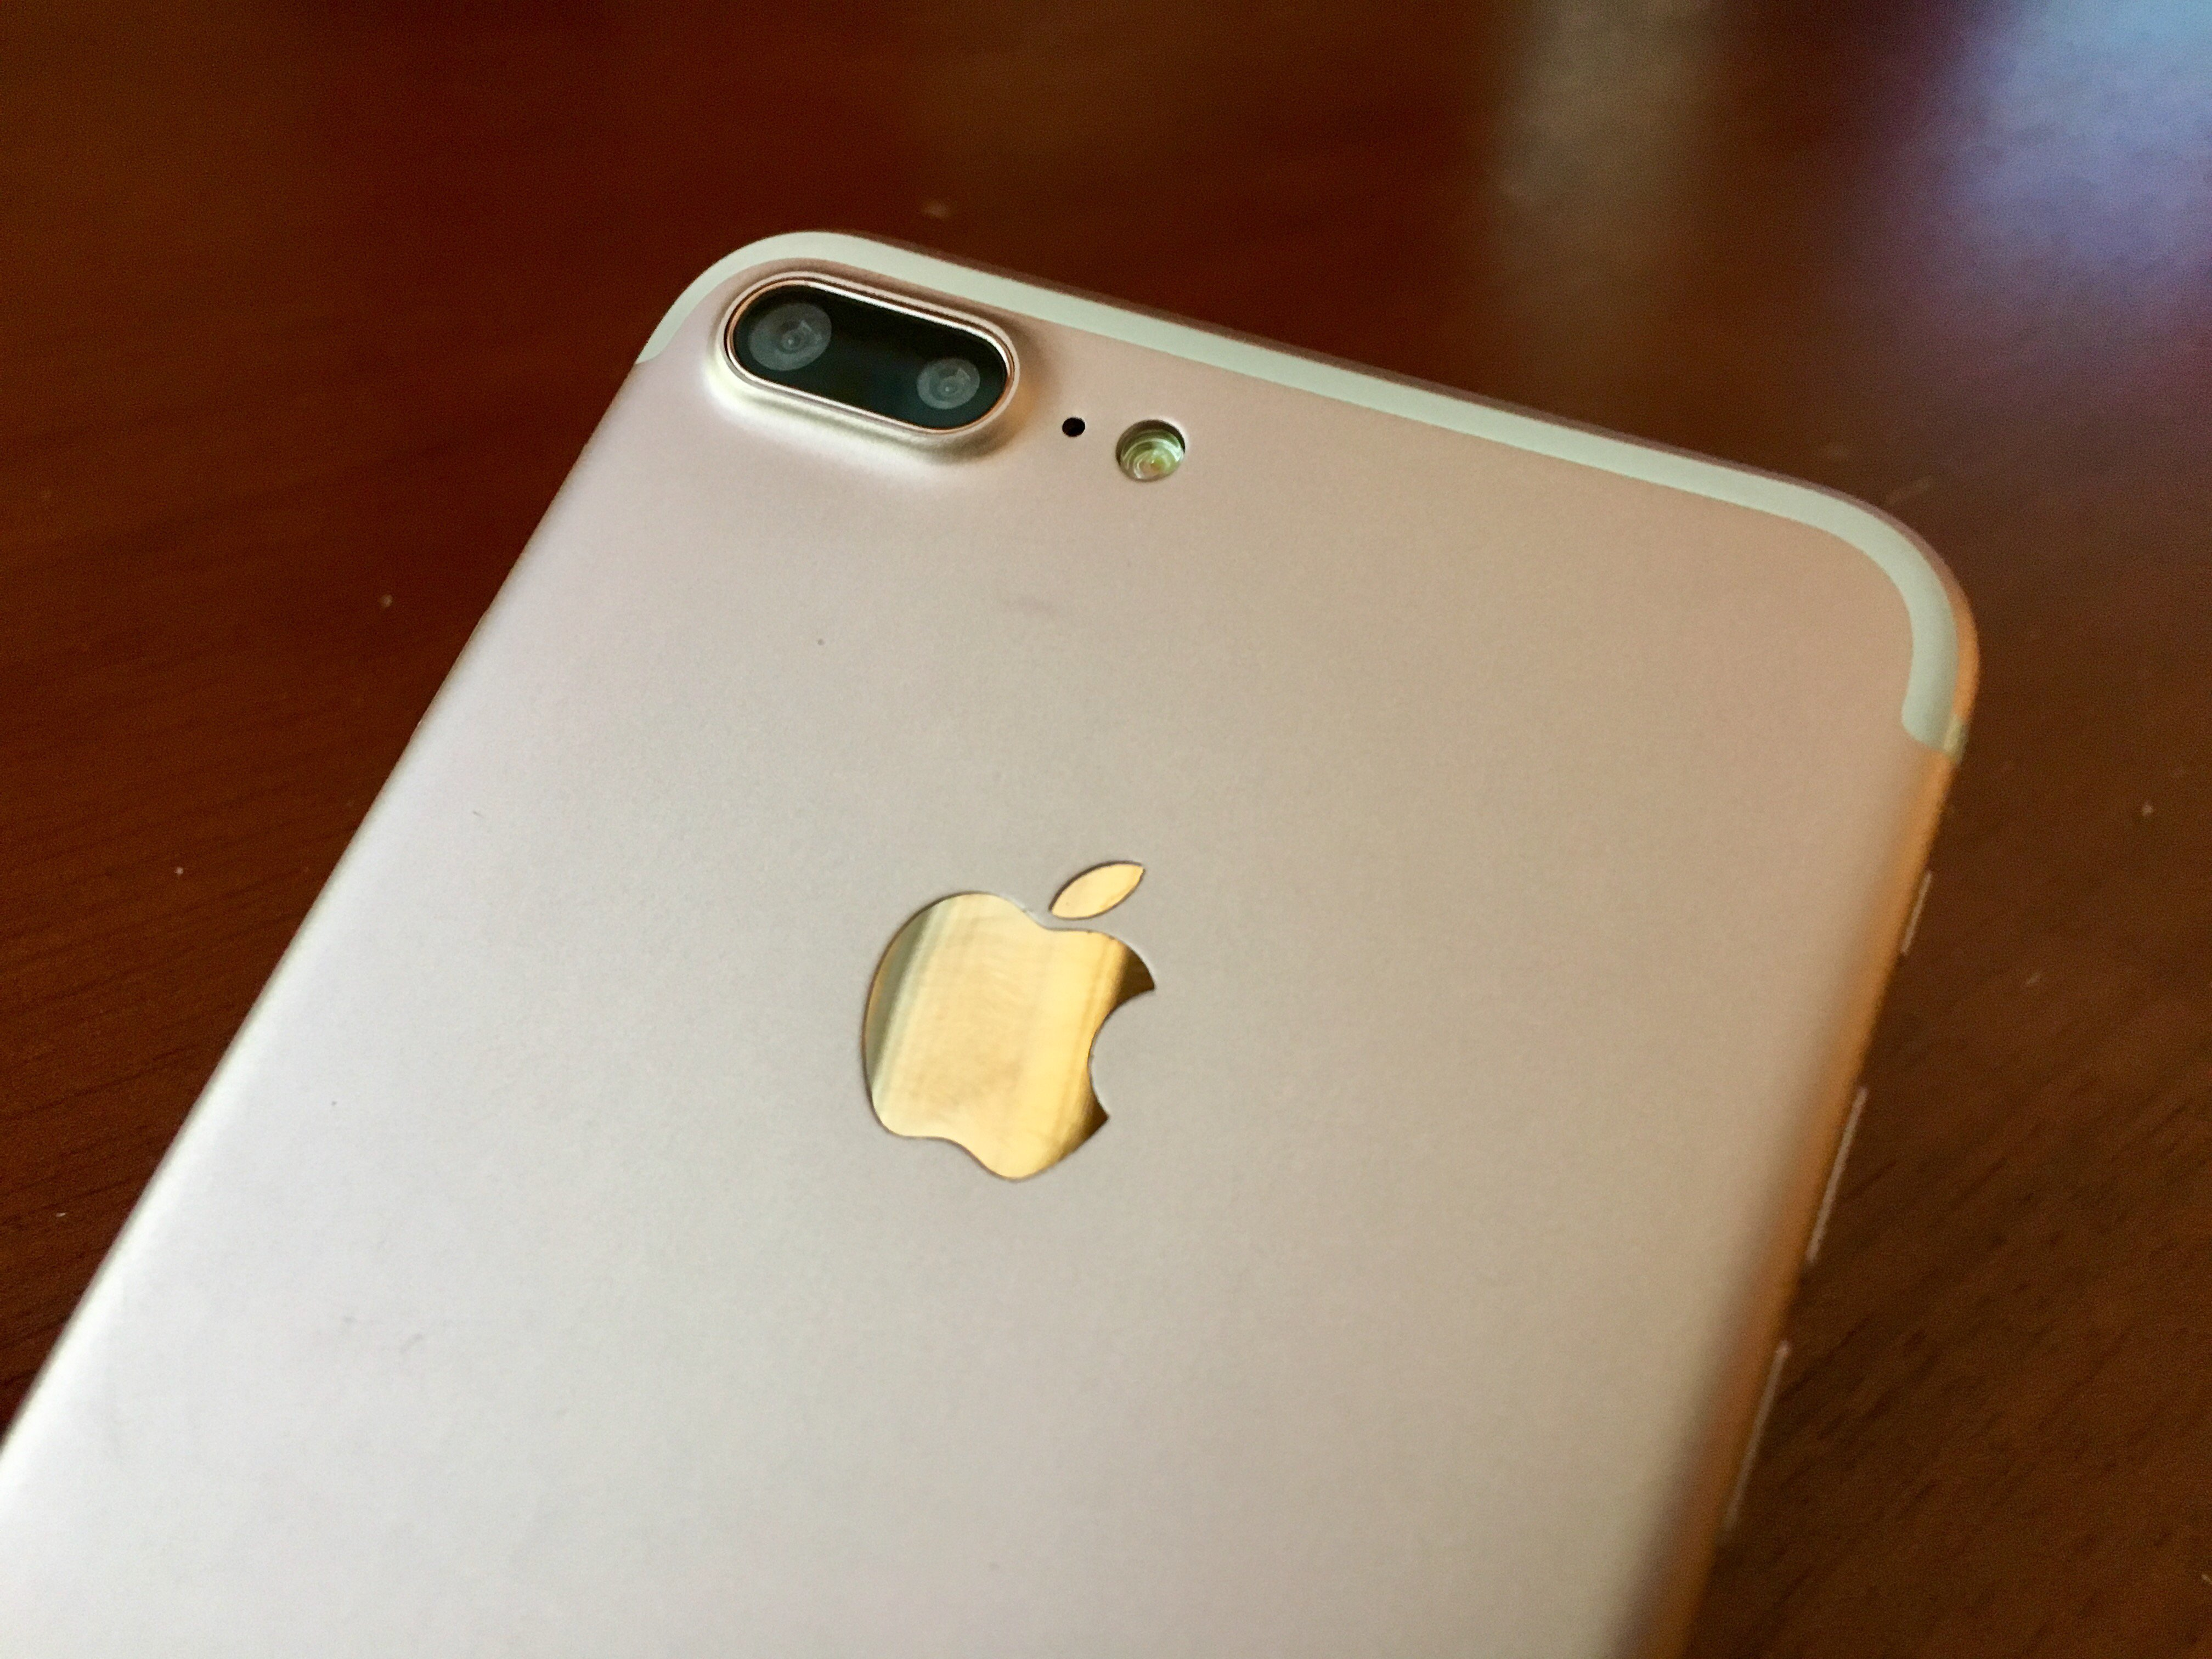 Apple Iphone 7 Plus A1661 Sim Free Model Detailed Review